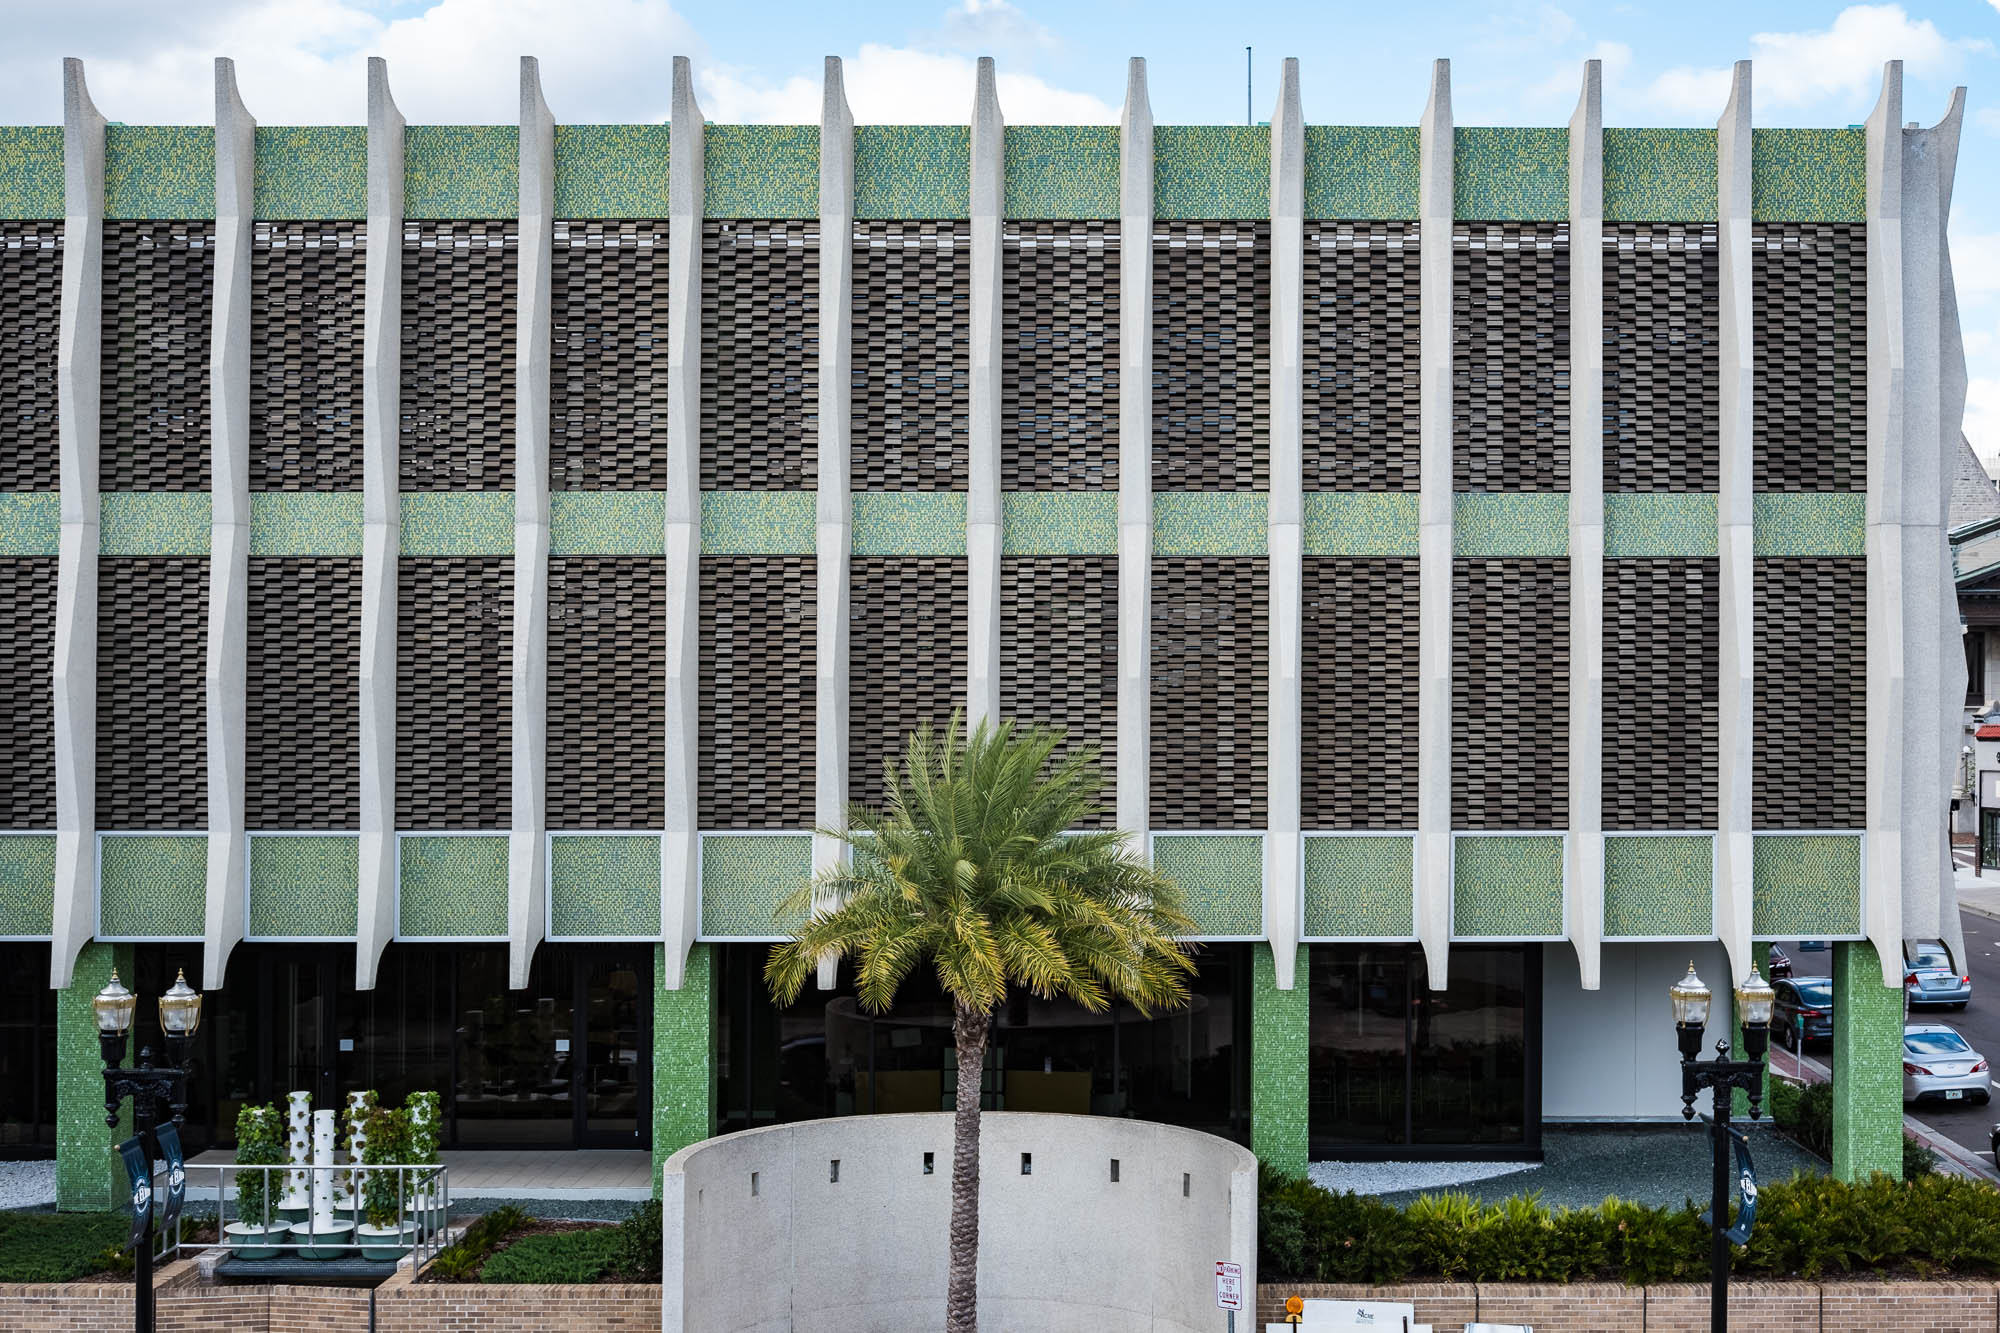 Image of the Haydon Burns Library, a modernist building with a green tiled facade and vertical fins.